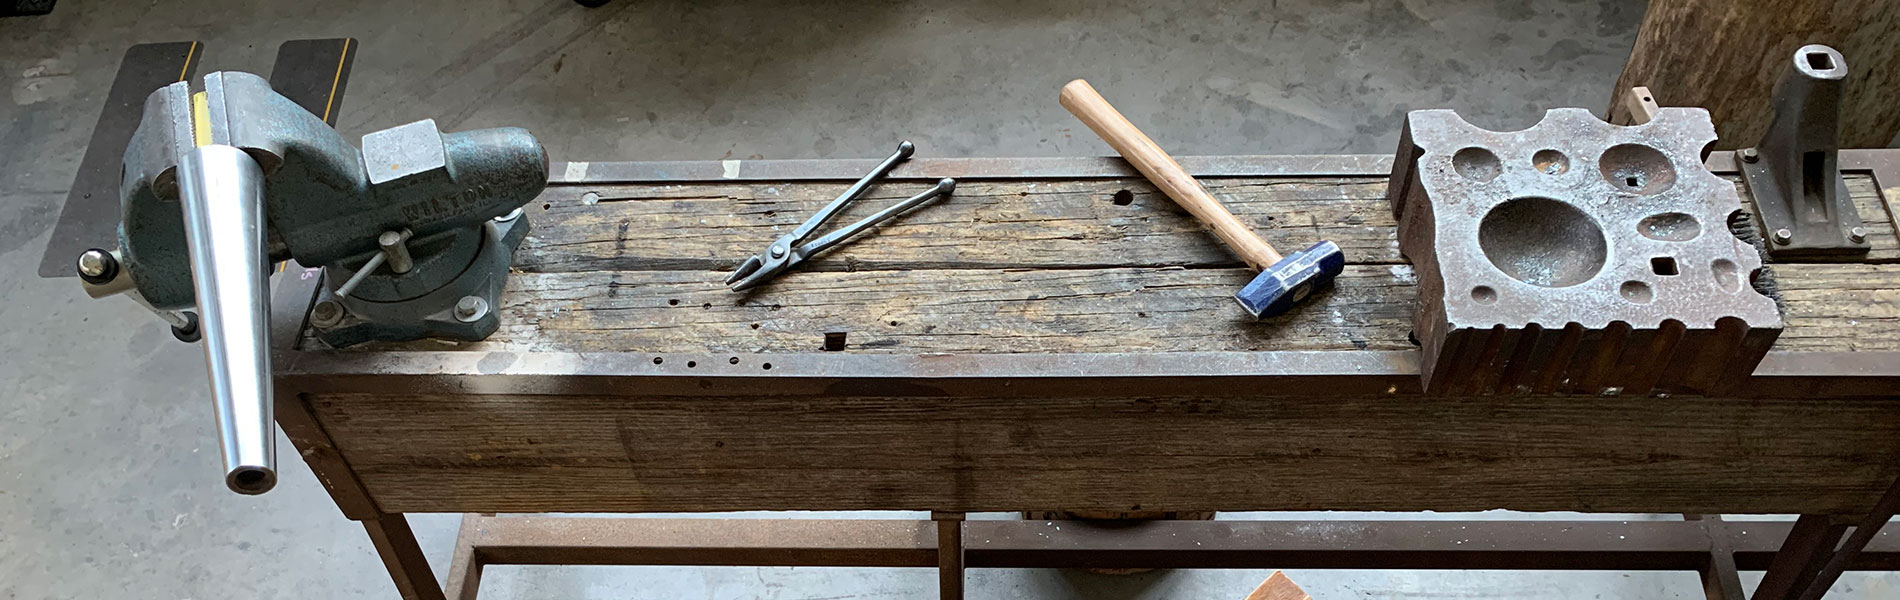 Metalsmithing workbench and tools